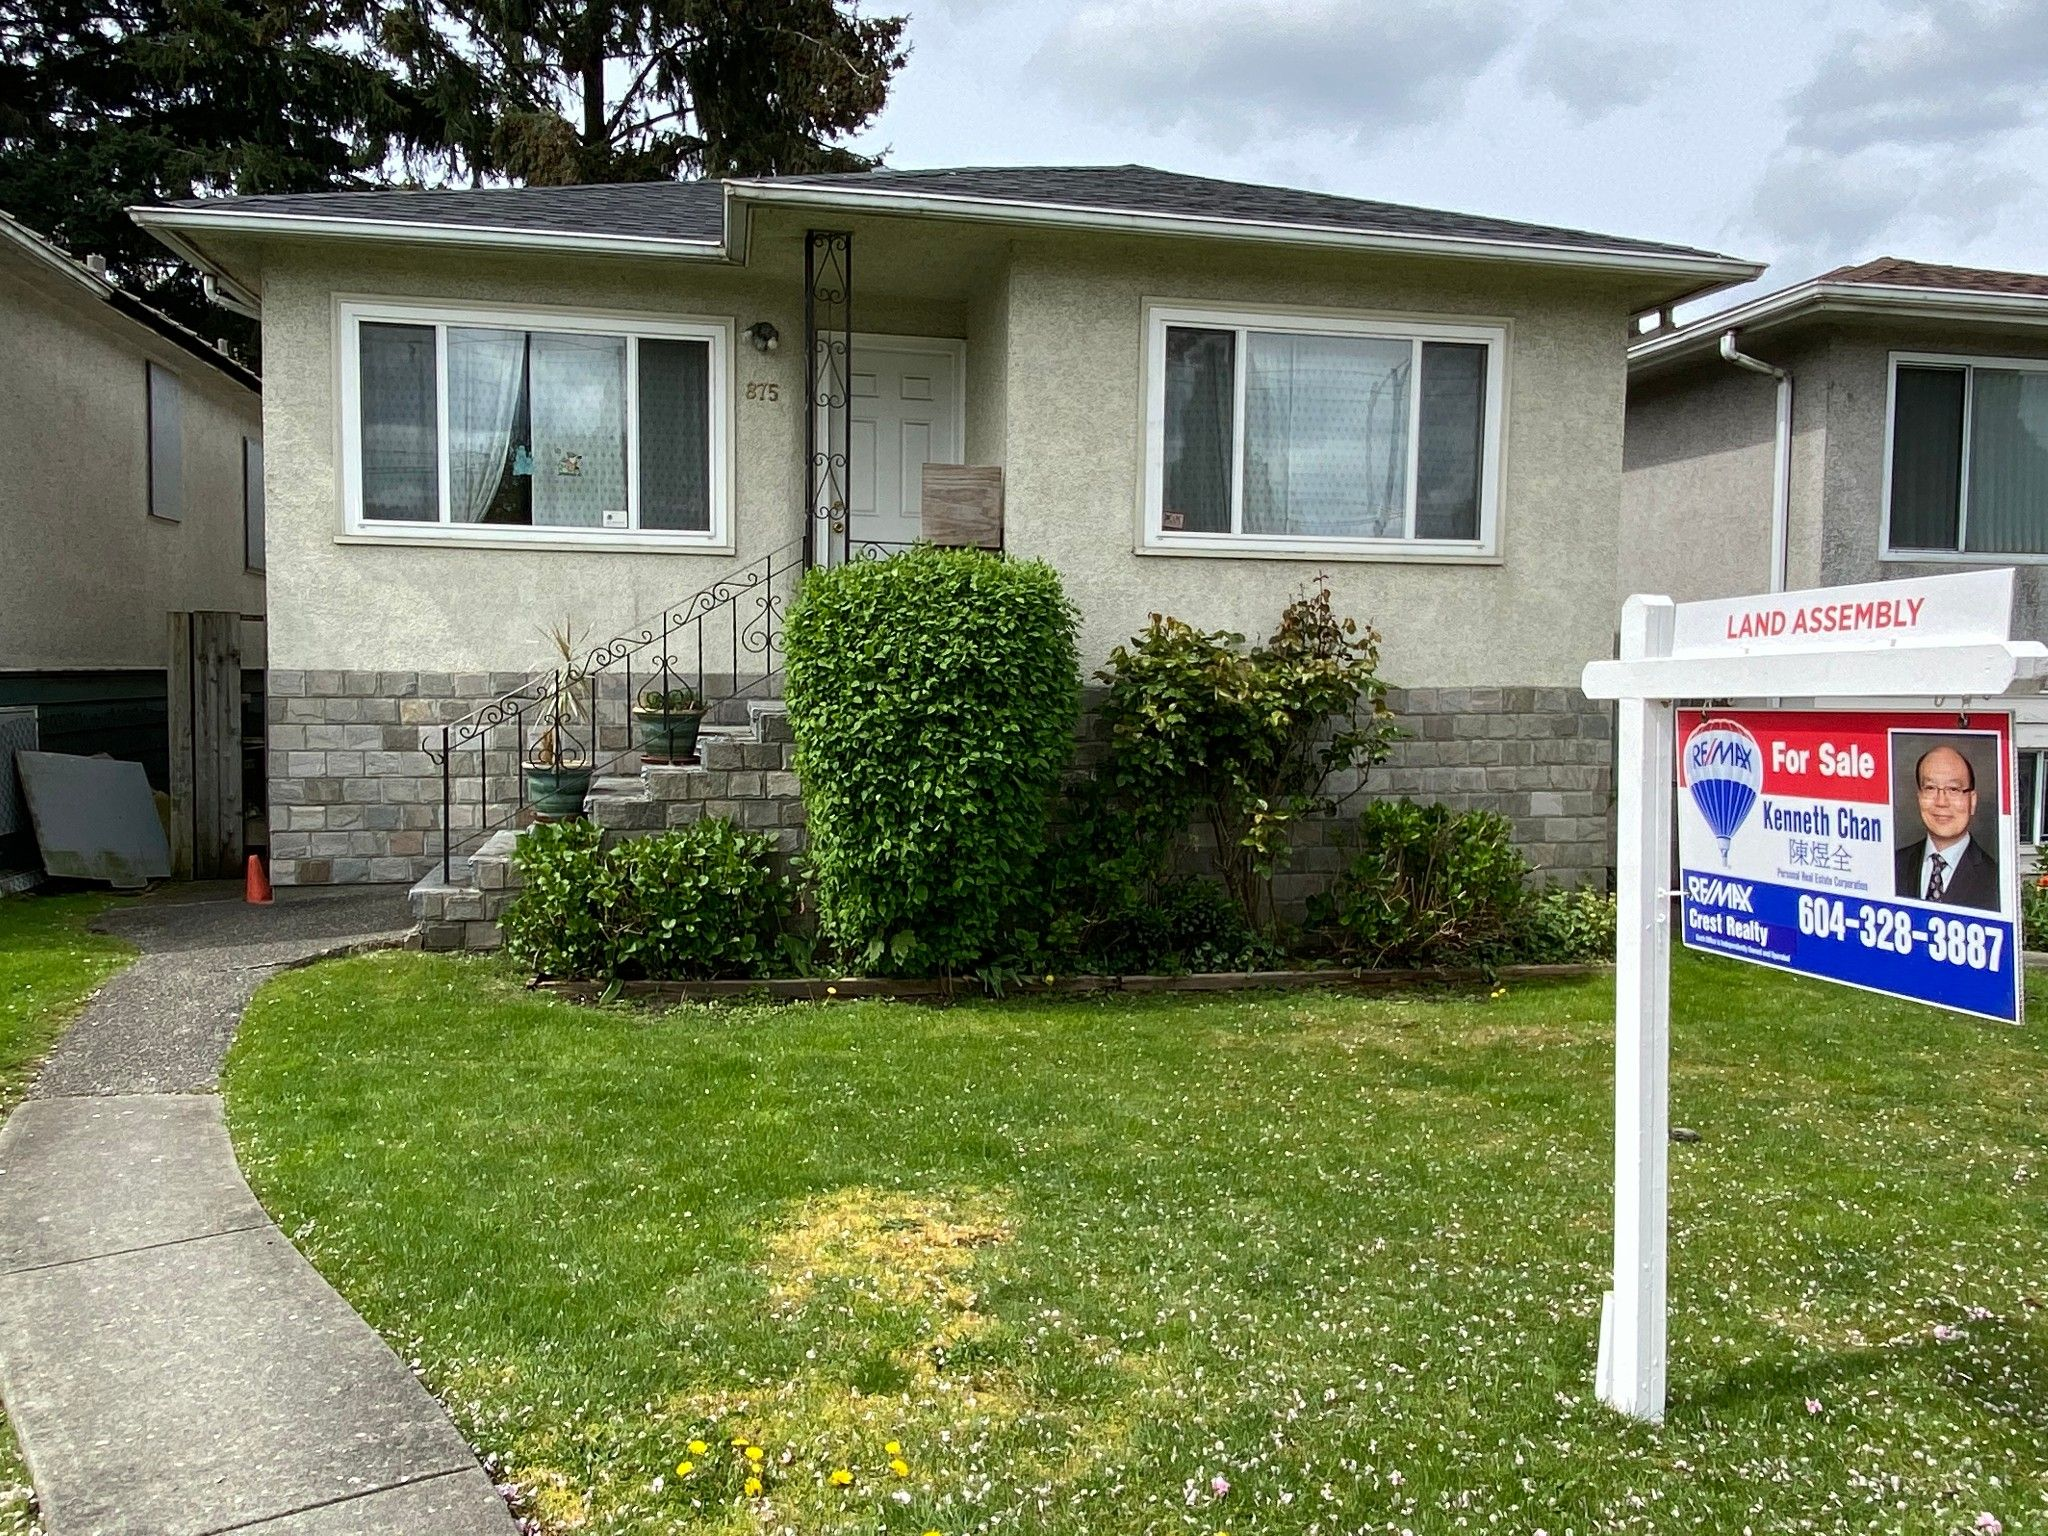 Photo 2: Photos: 875 NANAIMO Street in Vancouver: Hastings House for sale (Vancouver East)  : MLS®# R2567915